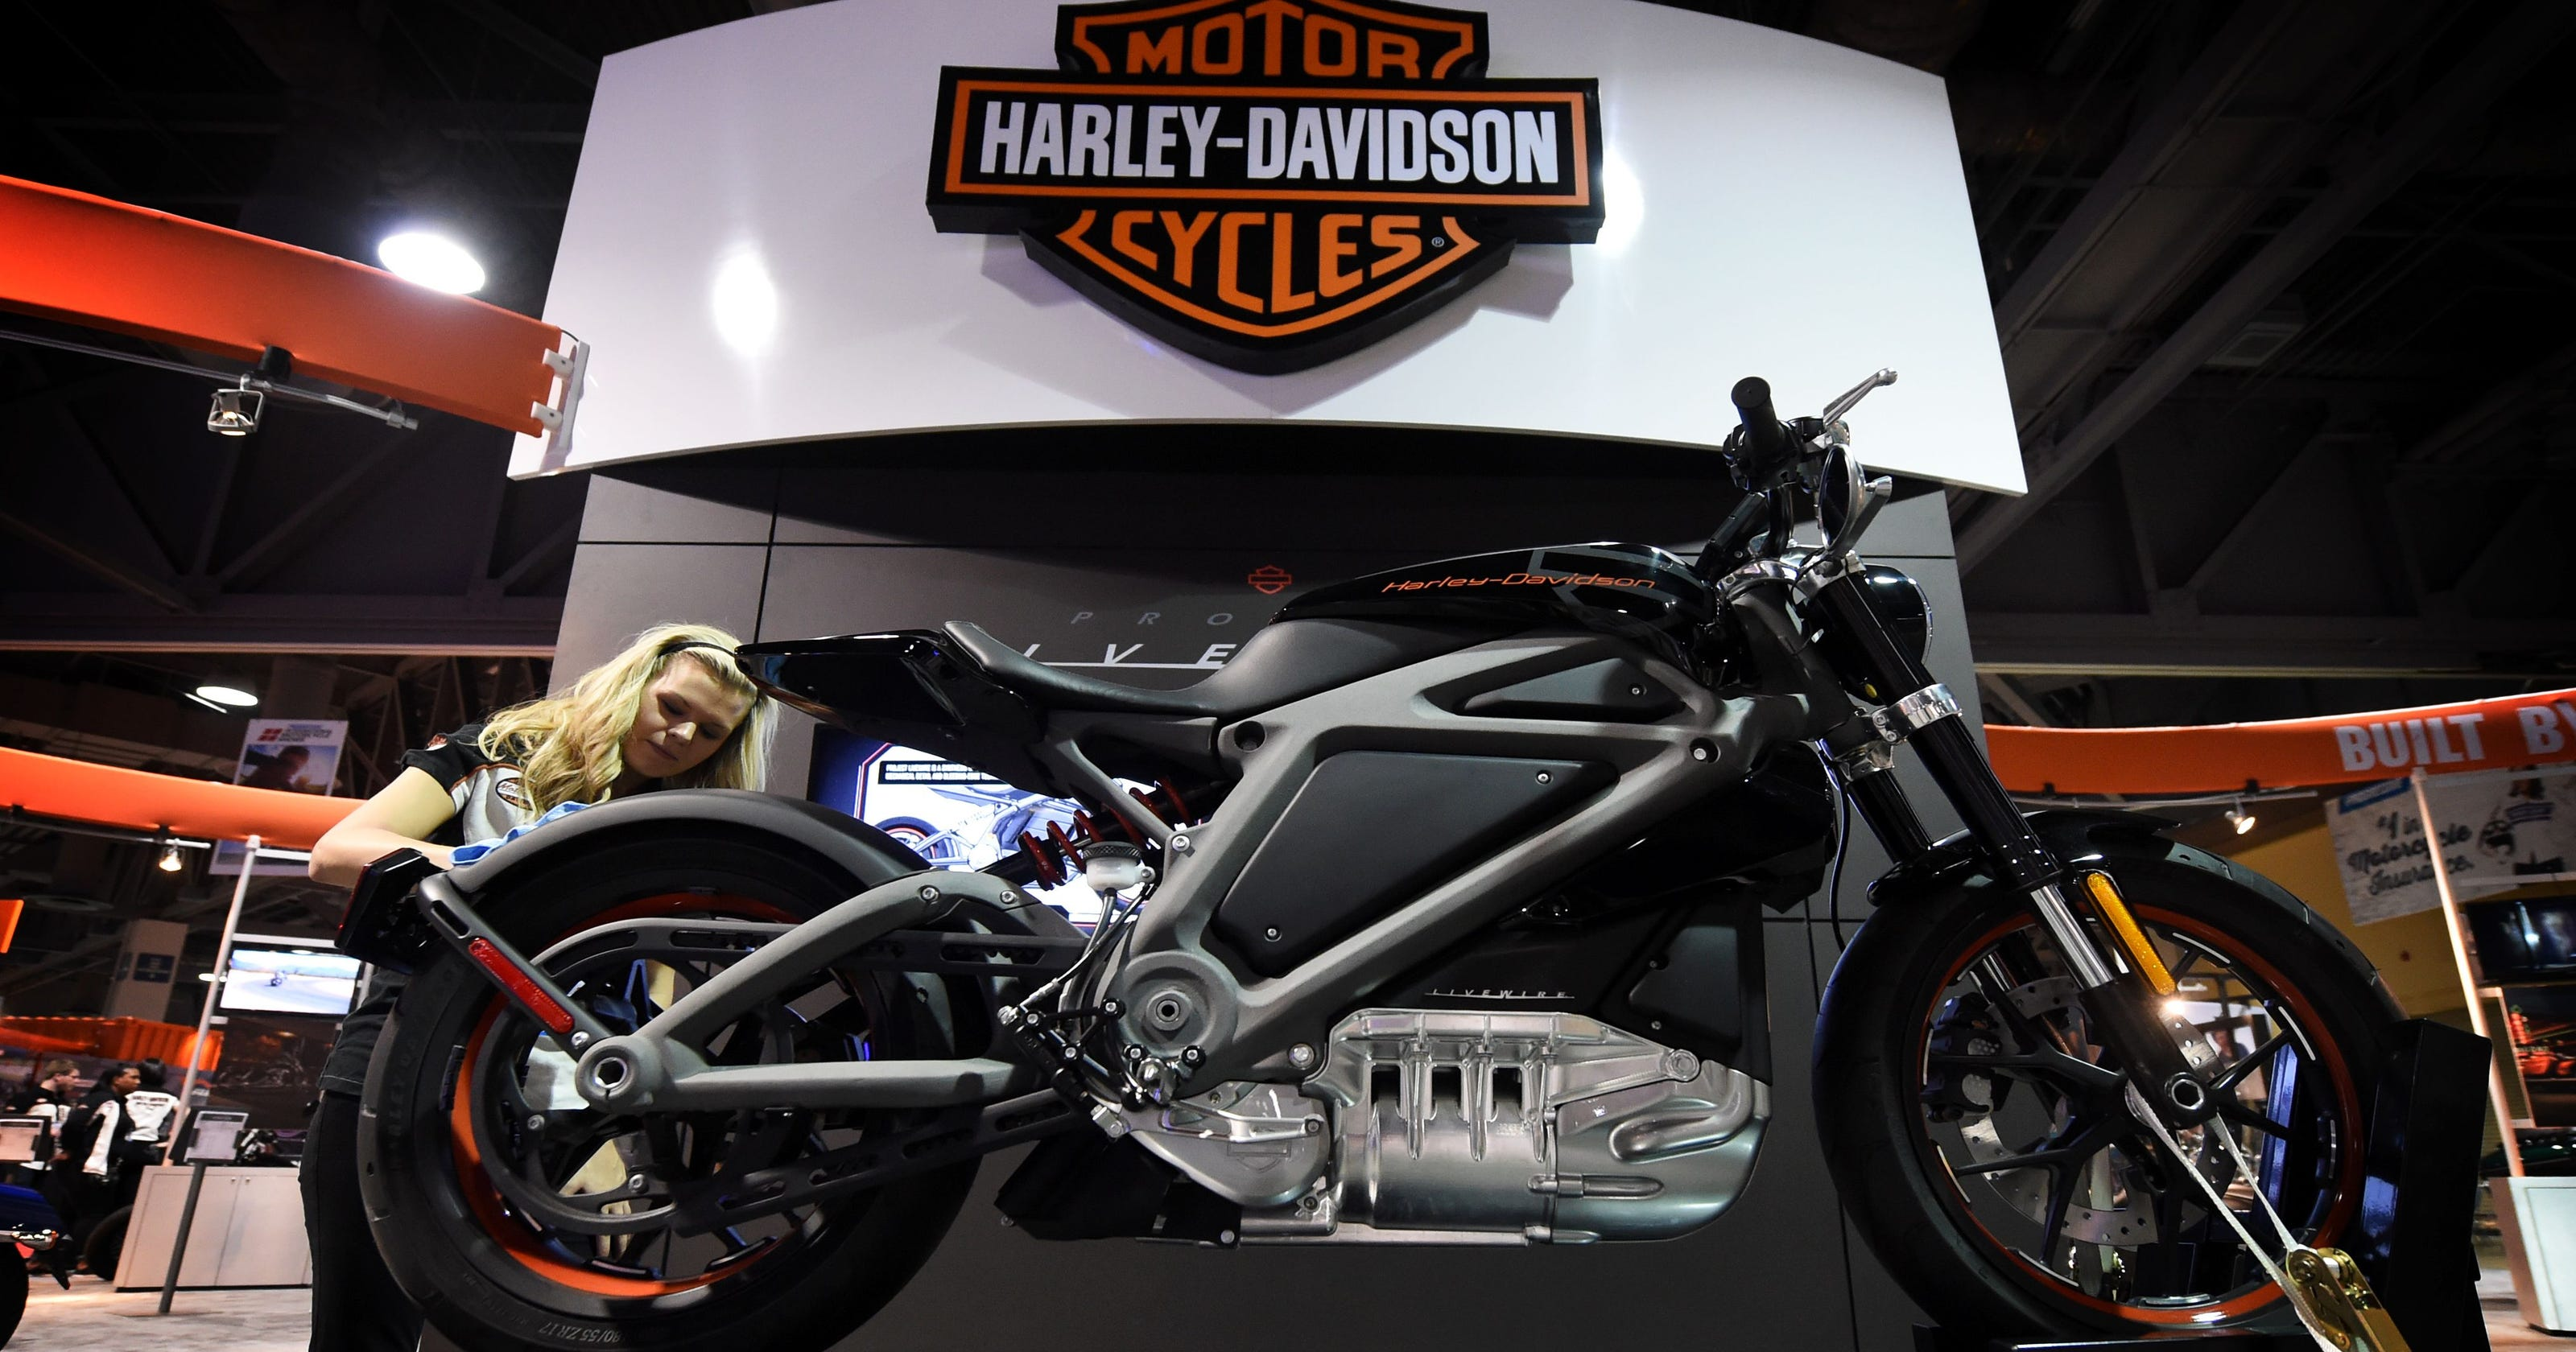 Harley Davidson Cant Rev Up Motorcycle Sales Will Cut Jobs